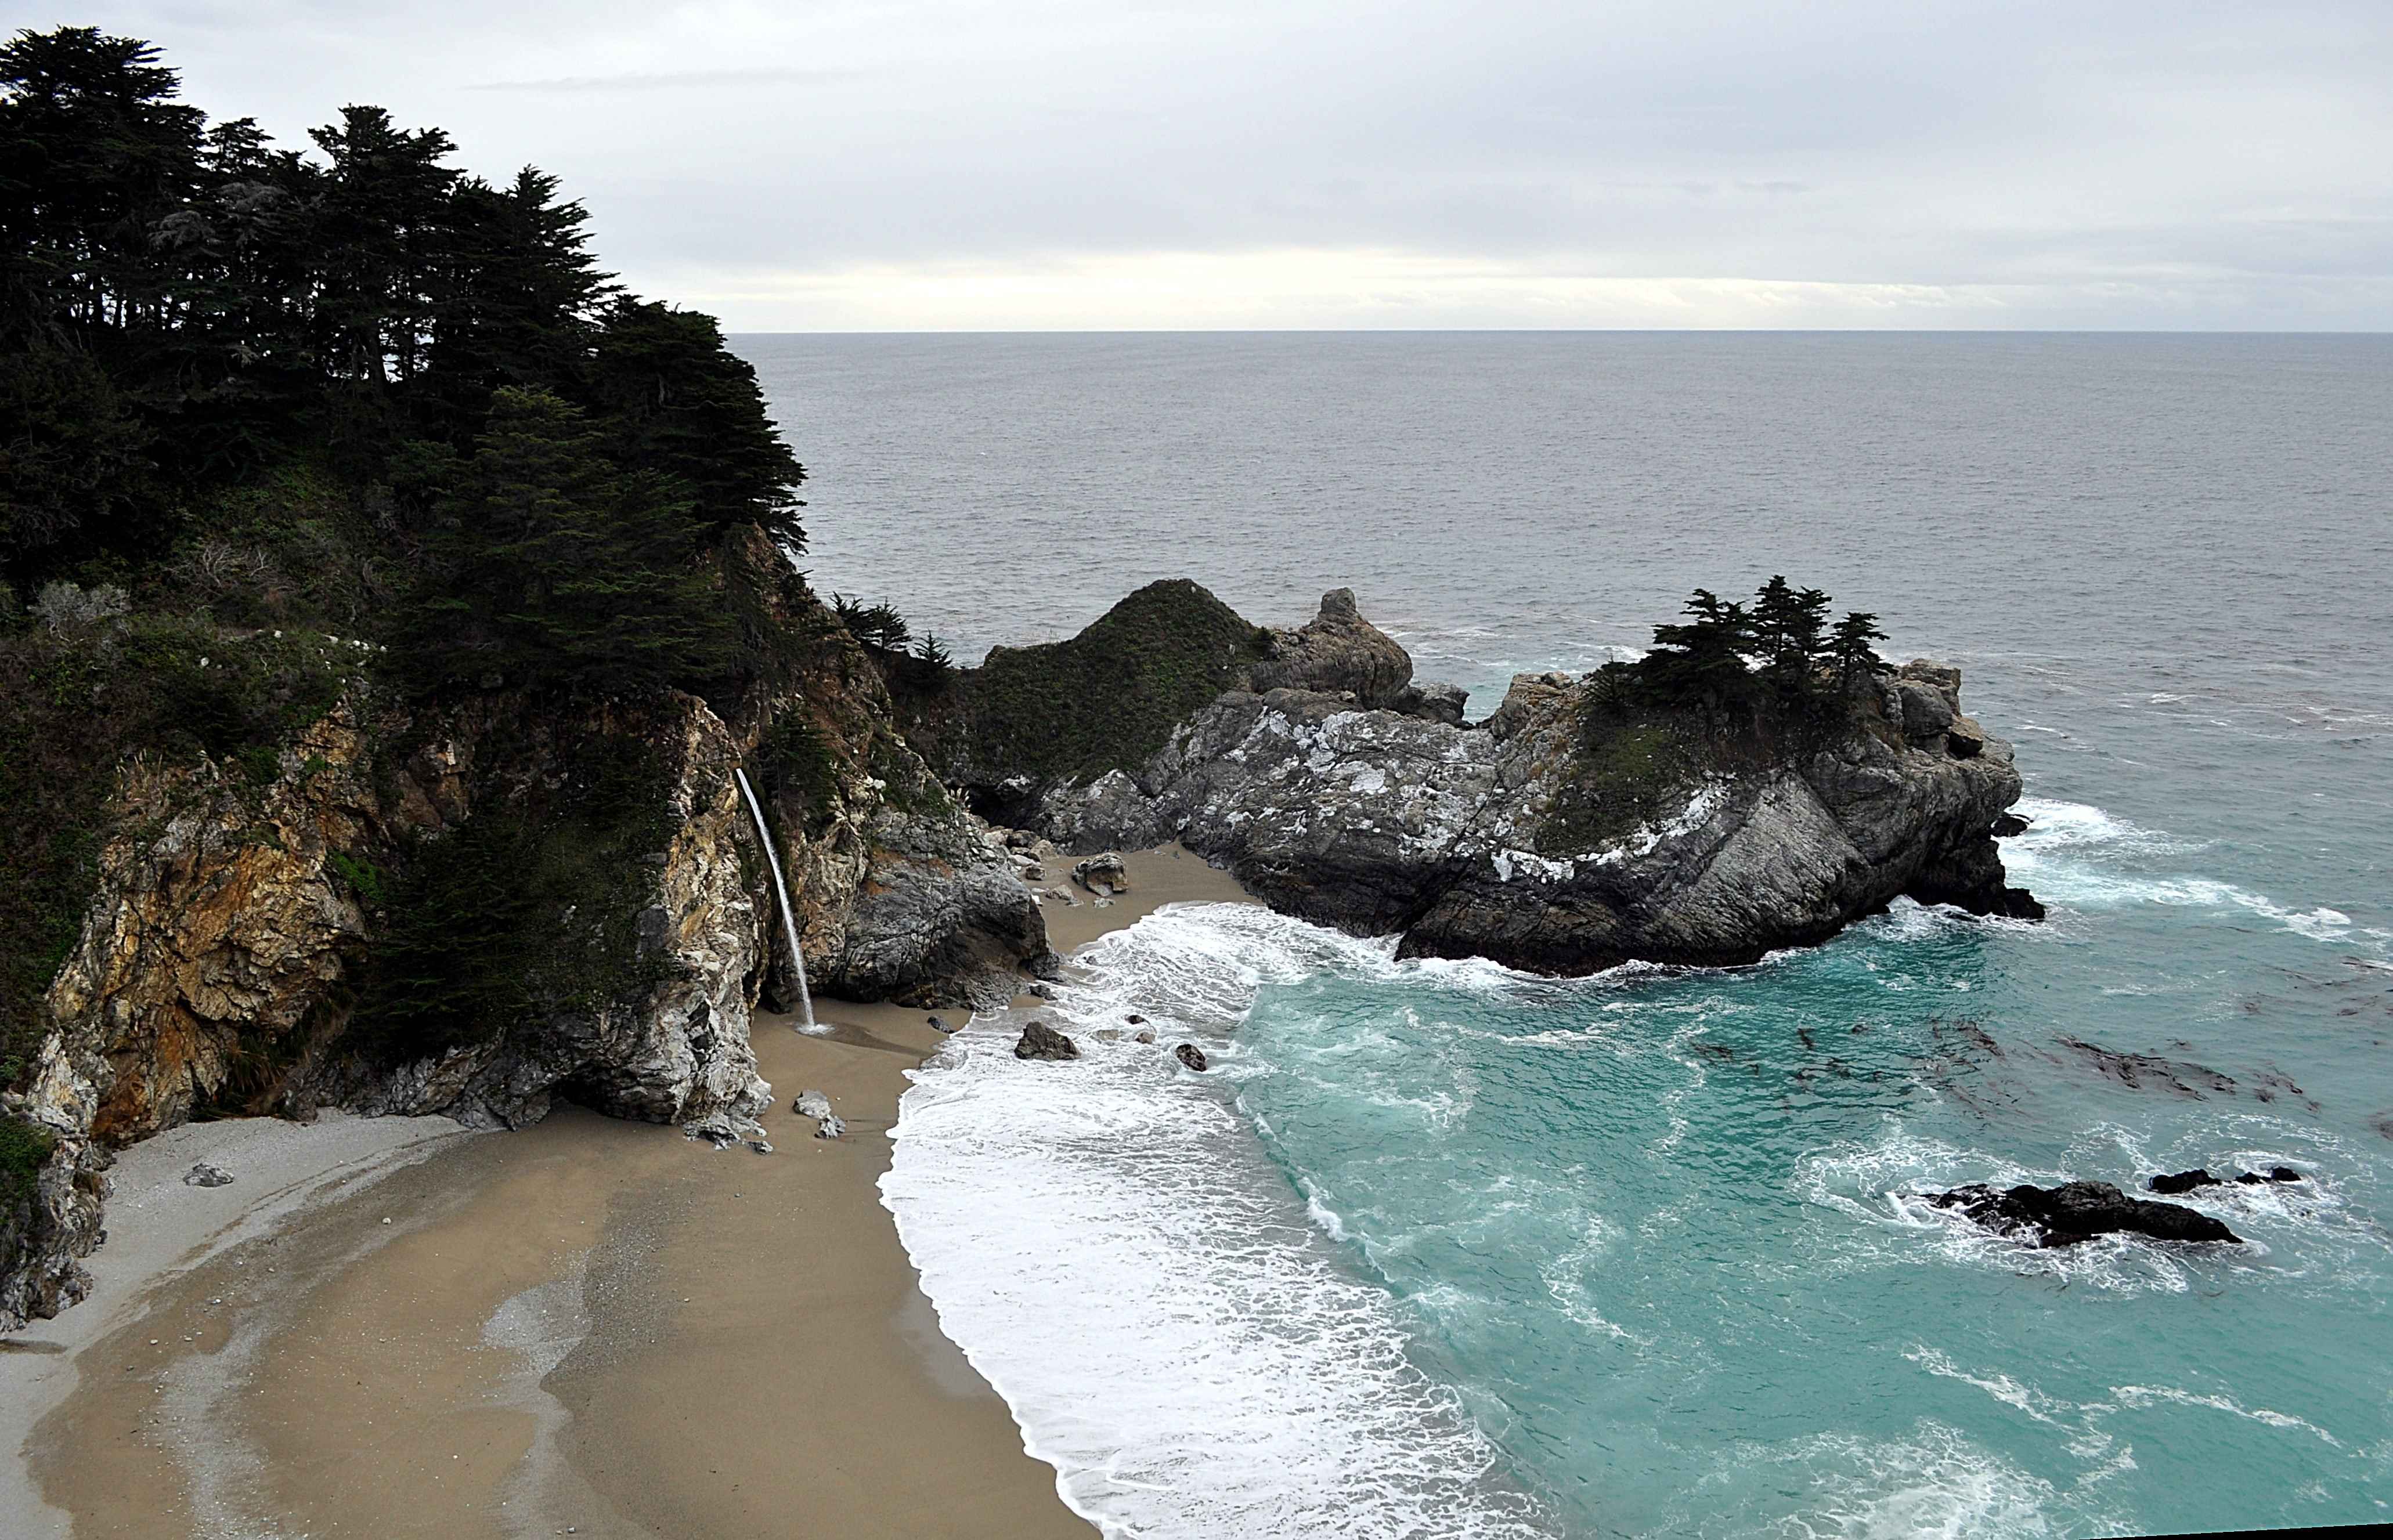 McWay Falls - Julia Pfiffer Burns State Park, Big Sur, CA, Beach, Coast, Ocean, Sea, HQ Photo